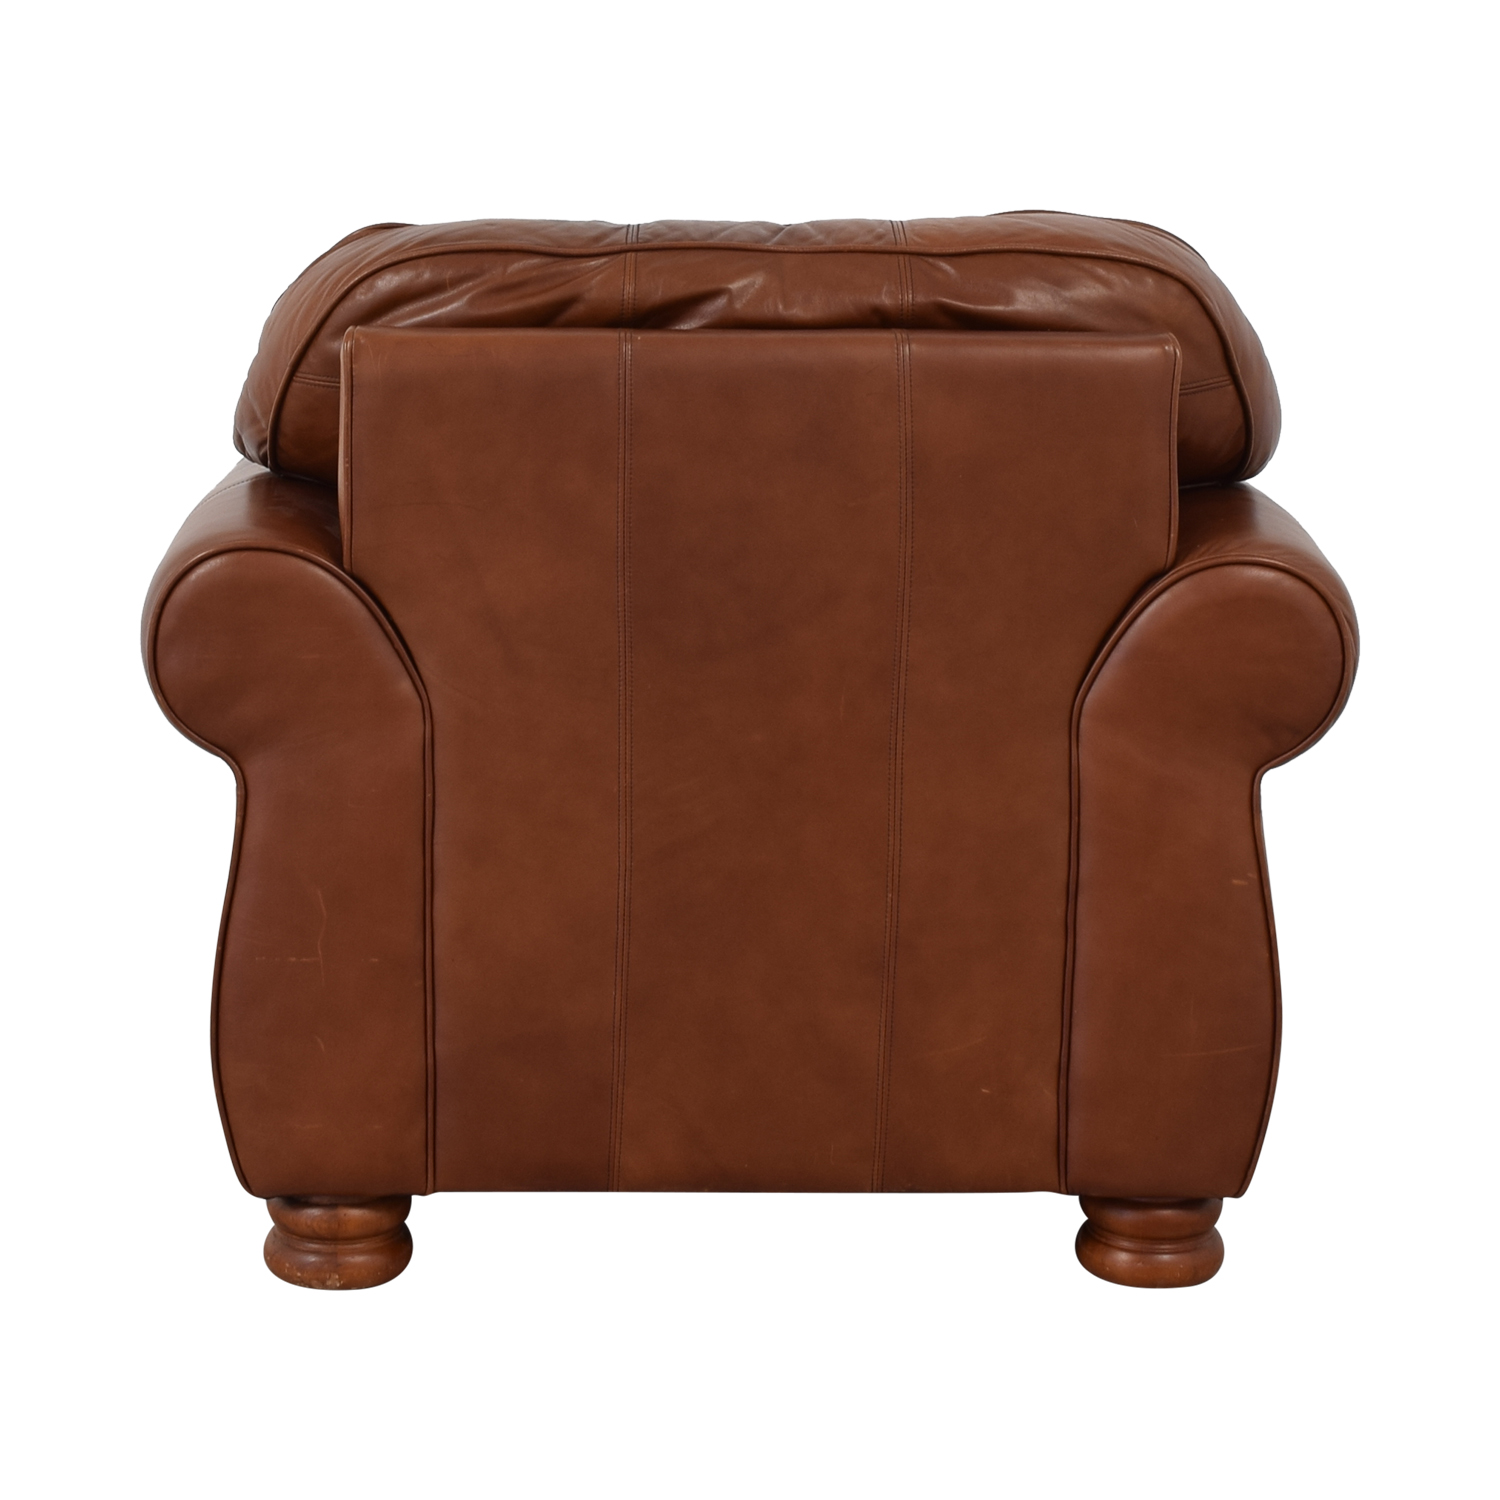 Thomasville Leather Sofa Chair sale